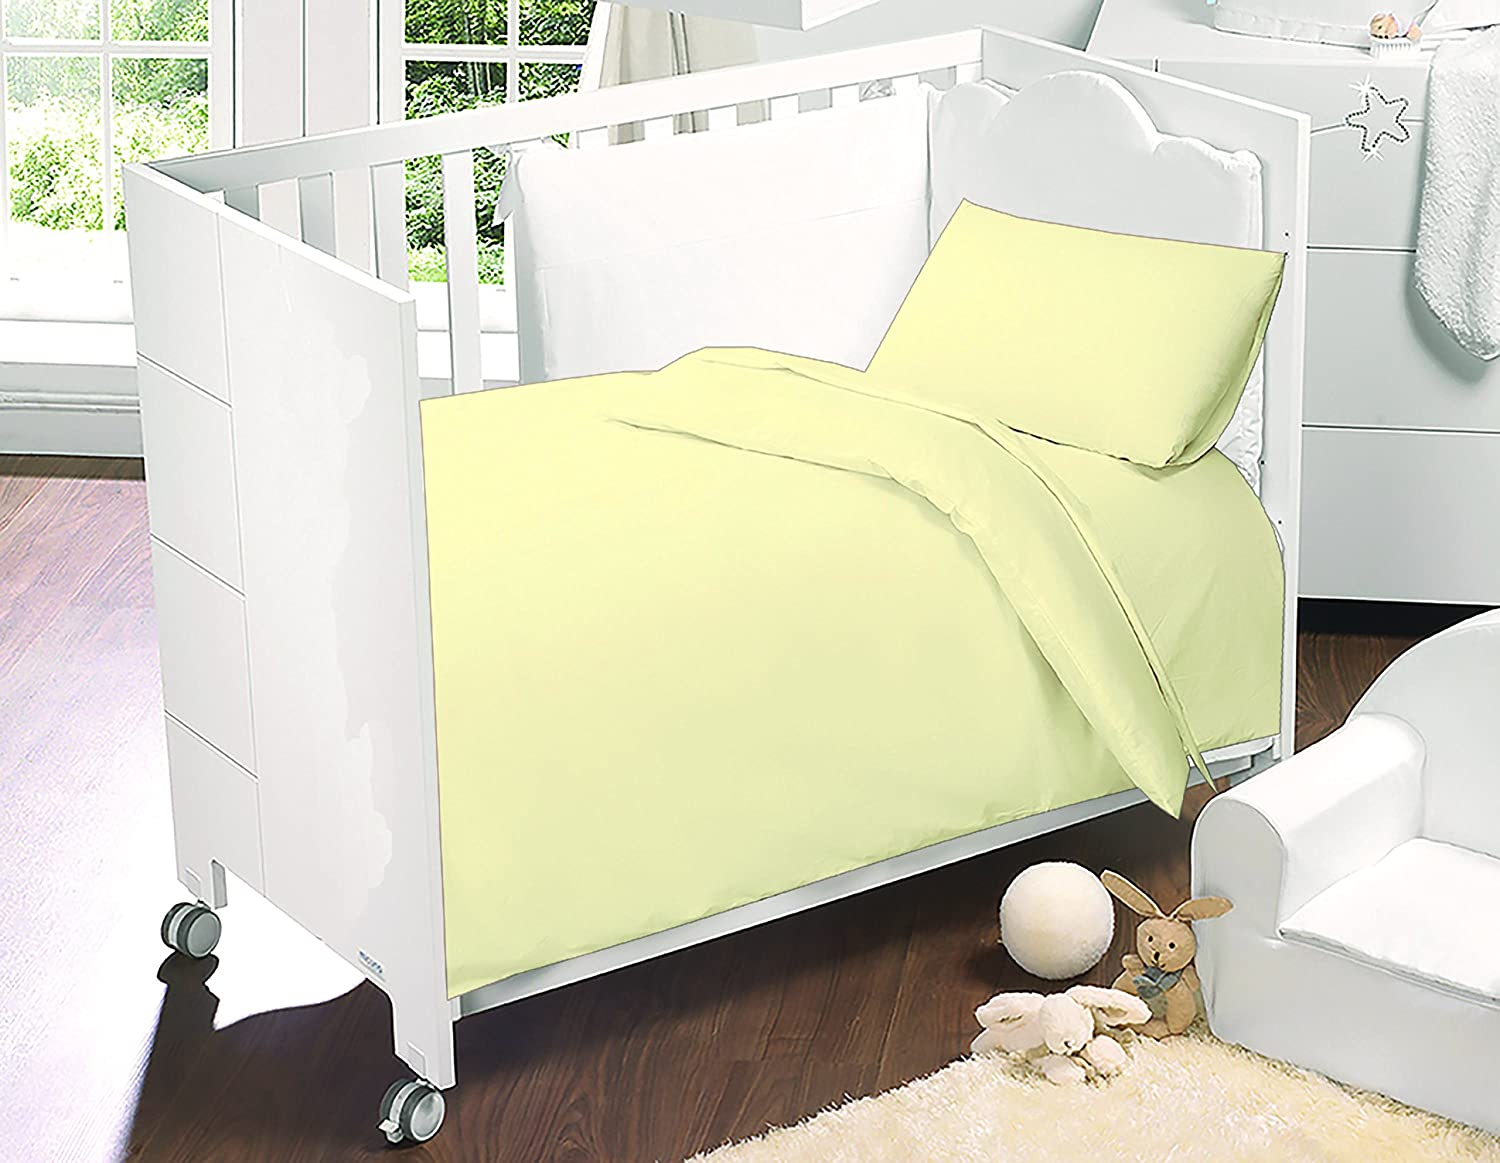 Love2Sleep 100% EGYPTIAN COTTON COT DUVET COVER 100 X 120 CM & PILLOWCASE SET : LEMON/ YELLOW